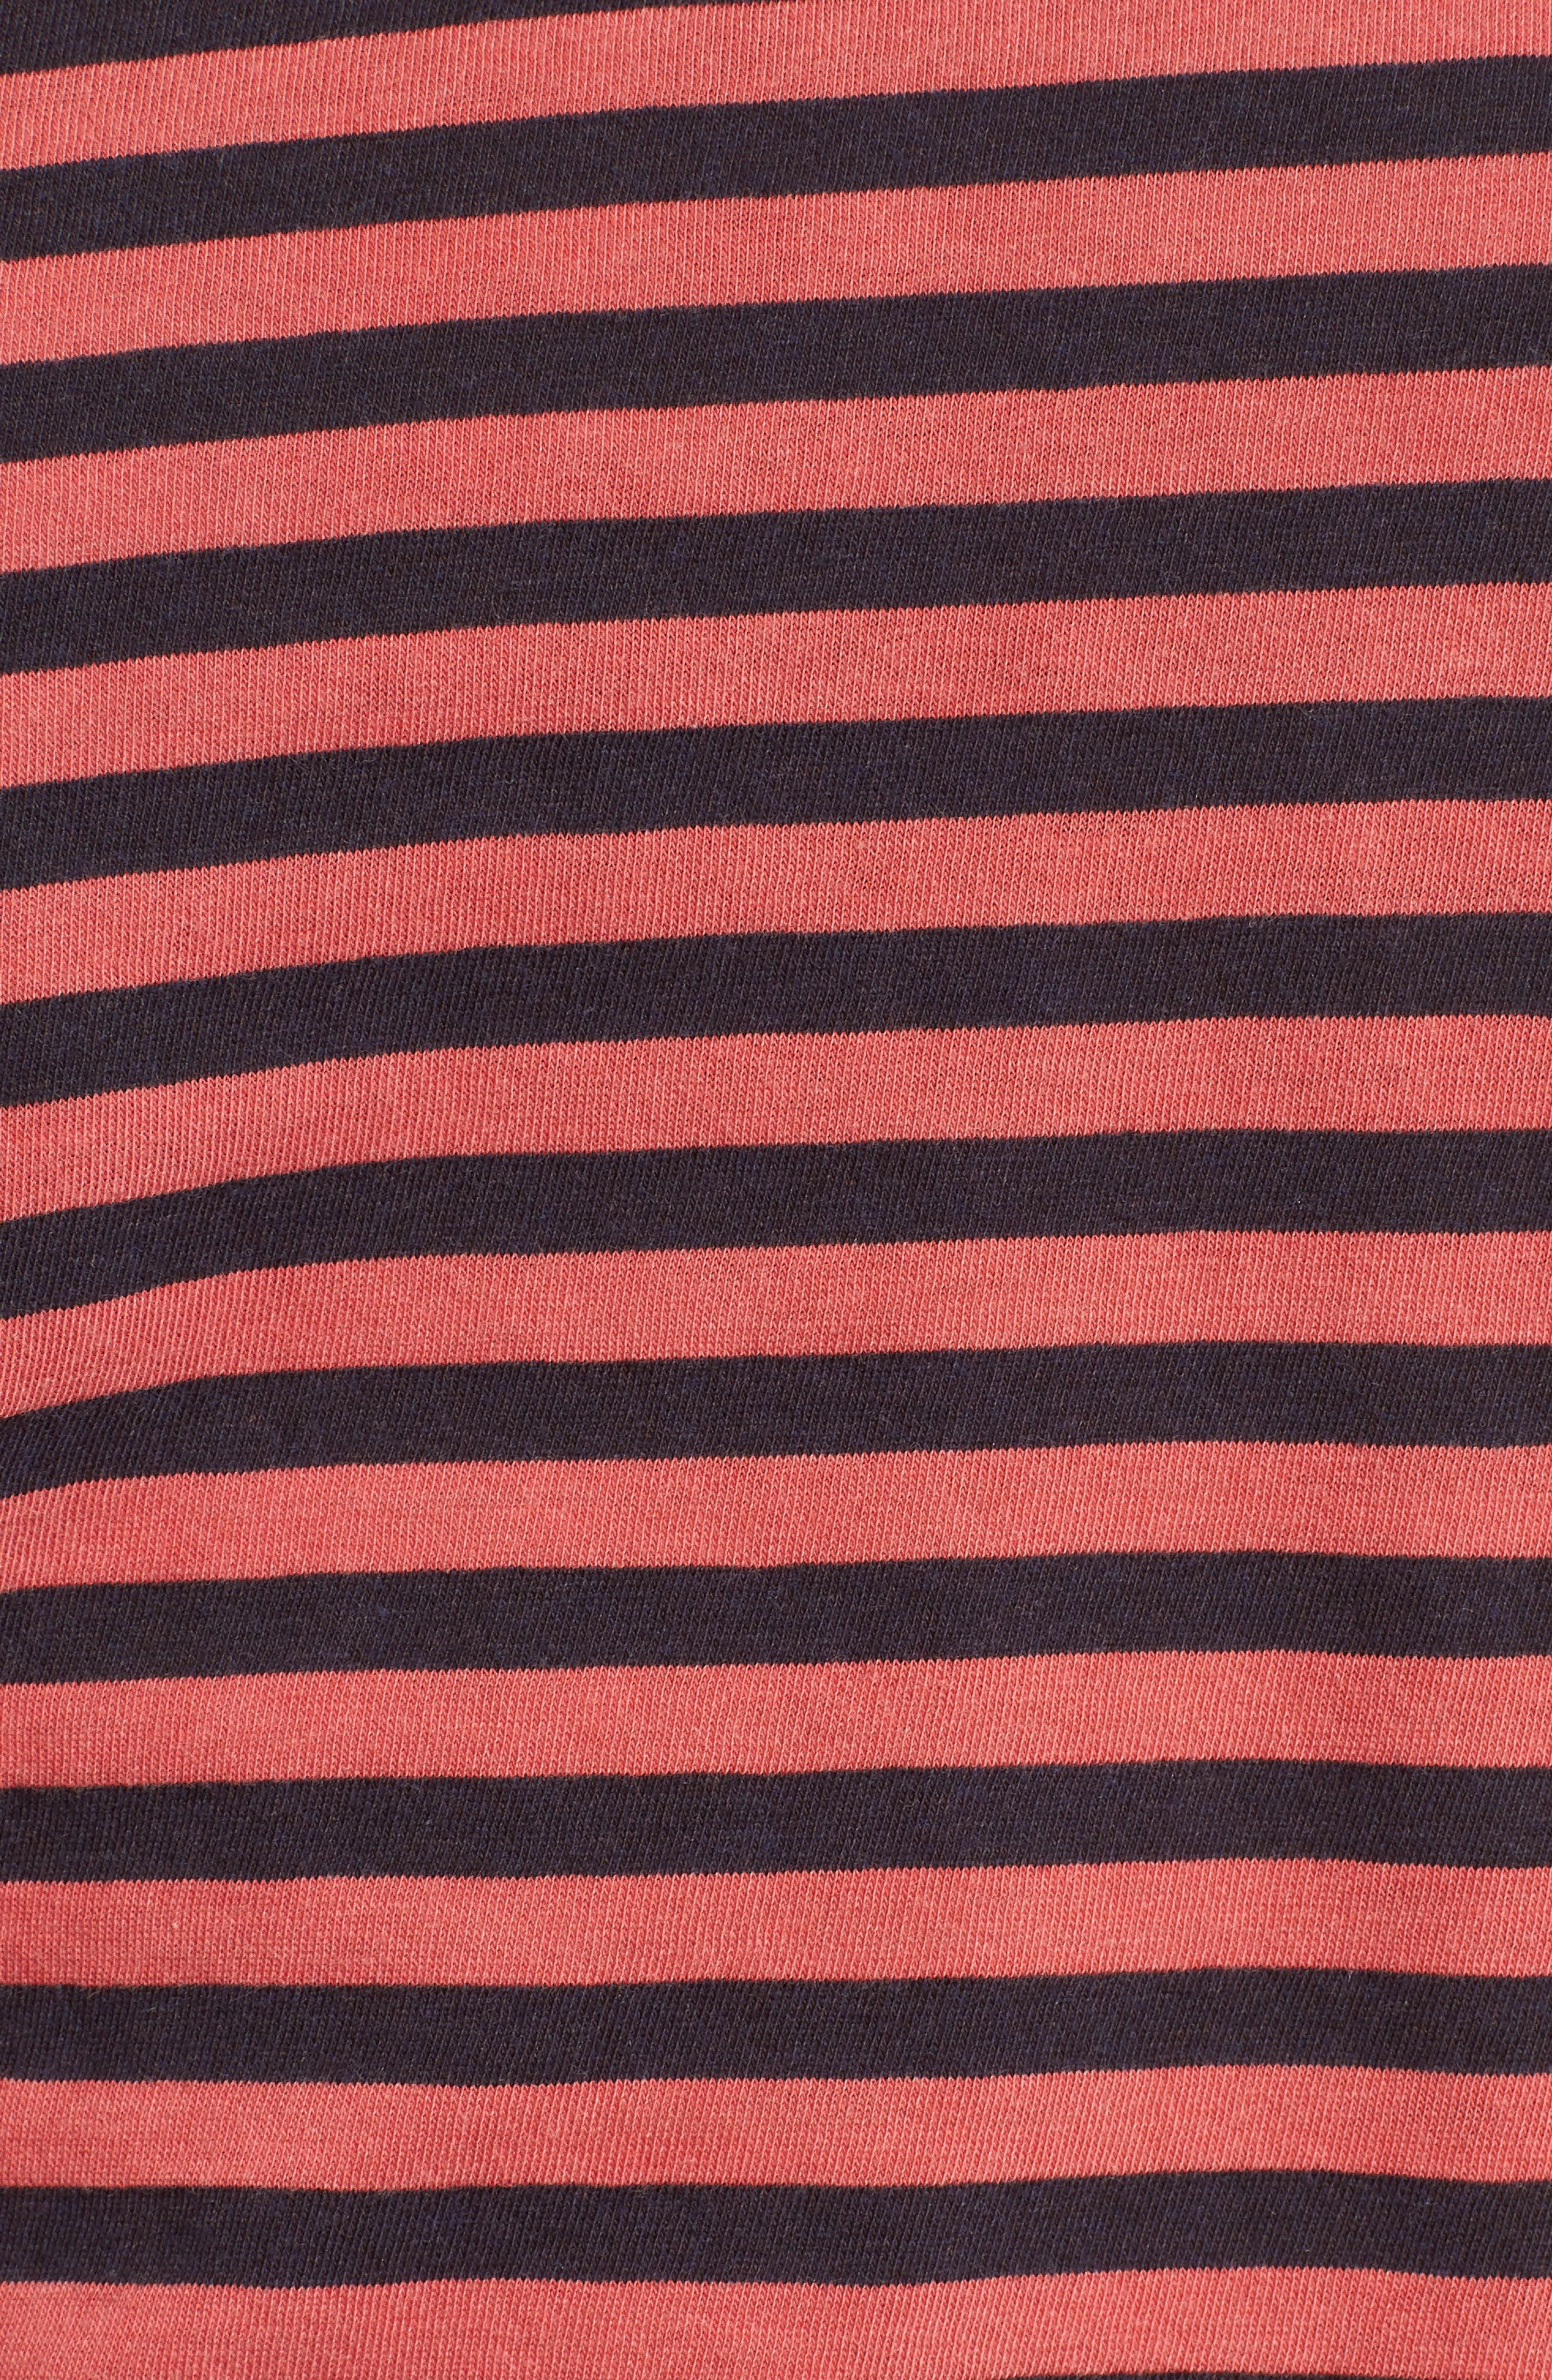 Stripe Cotton Boy Tee,                             Alternate thumbnail 5, color,